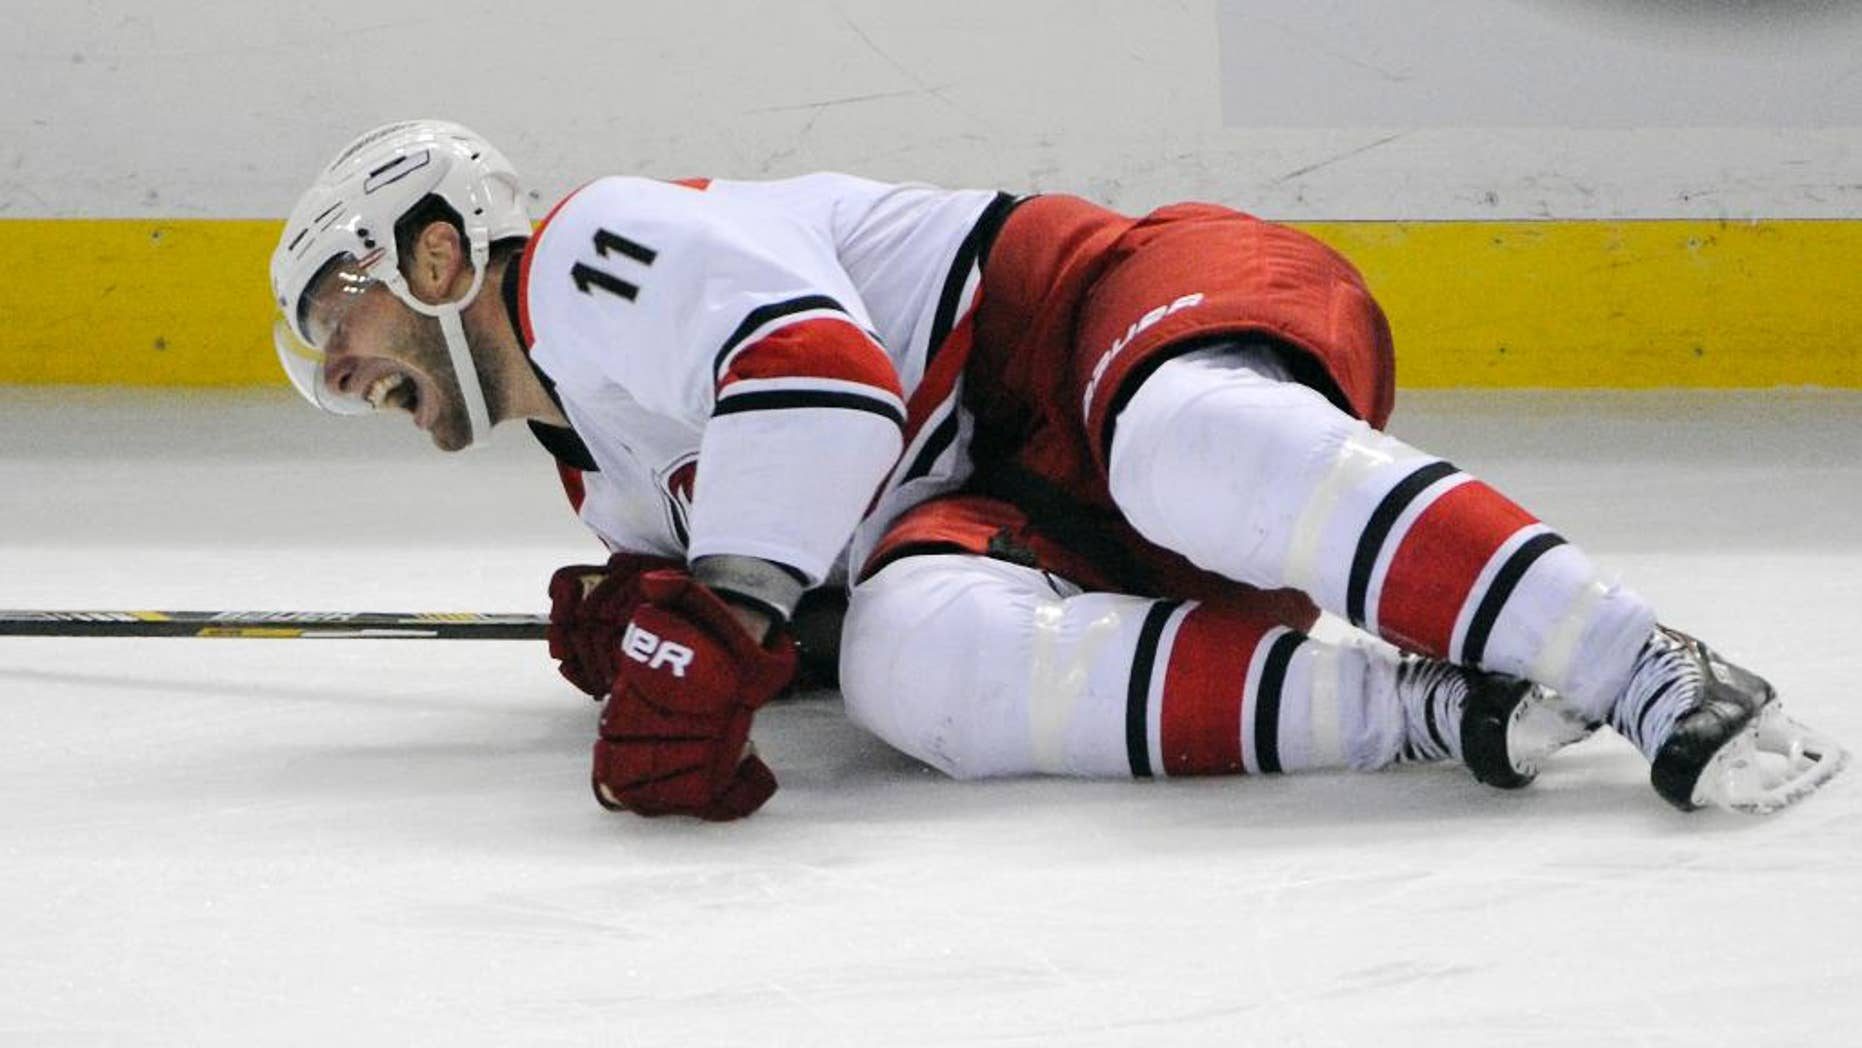 Carolina Hurricanes center Jordan Staal grimaces as he lays on the ice during the third period action of an NHL hockey preseason game against the Buffalo Sabres, Tuesday, Sept. 23, 2014, in Buffalo, N.Y. (AP Photo/Gary Wiepert)